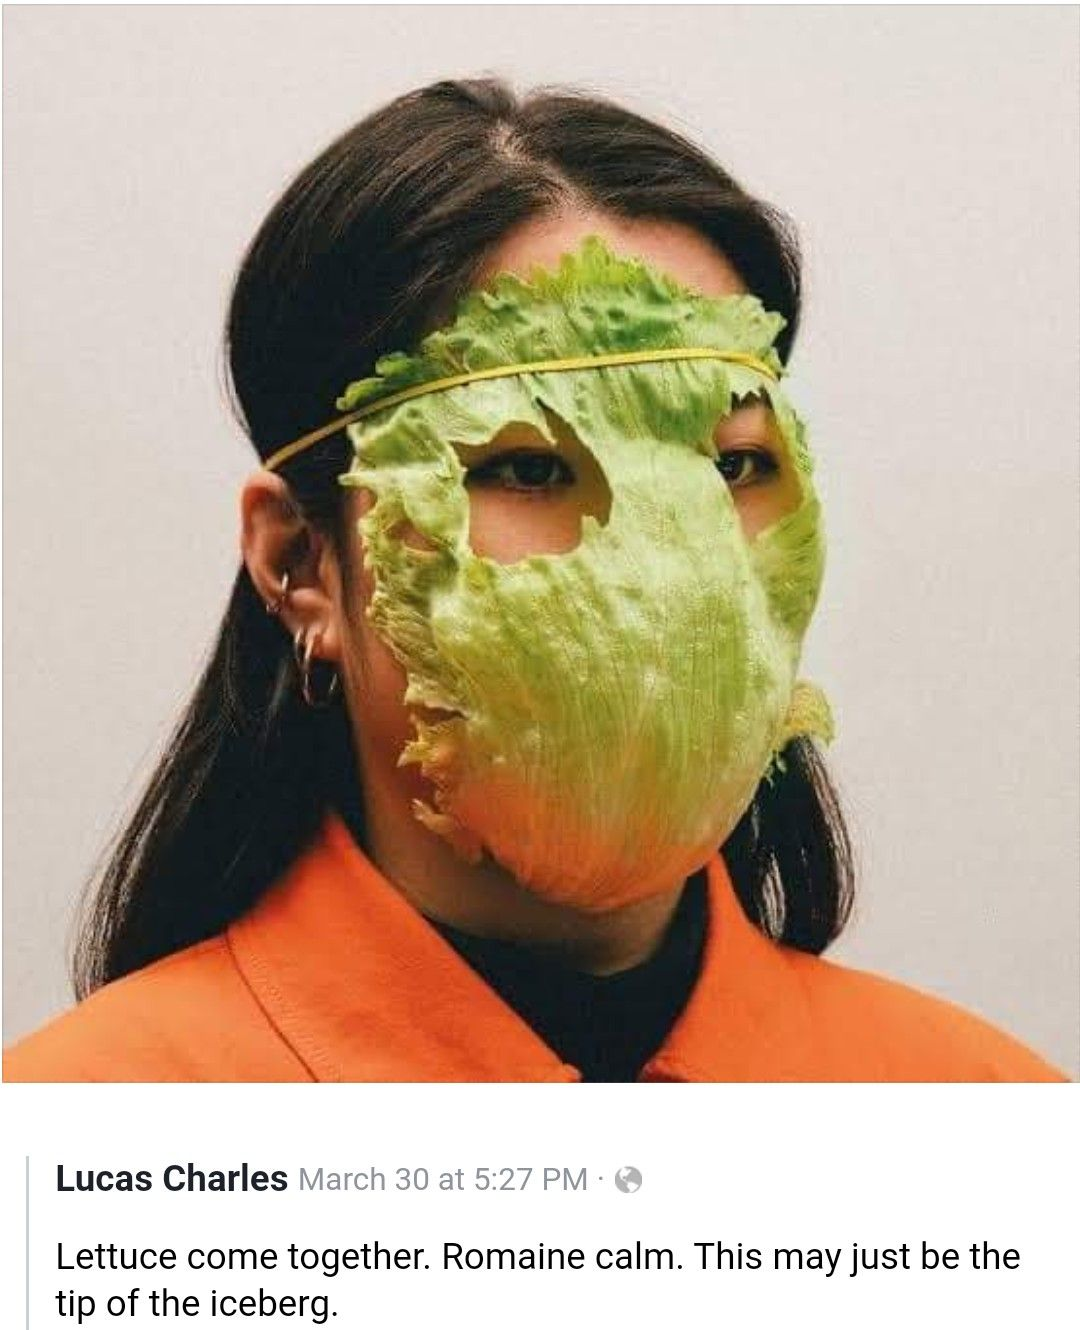 Pin By Lauren Mcalexander On Well It Made Me Smile In 2020 The Mask Costume Mystique Costume Vegan Face Mask